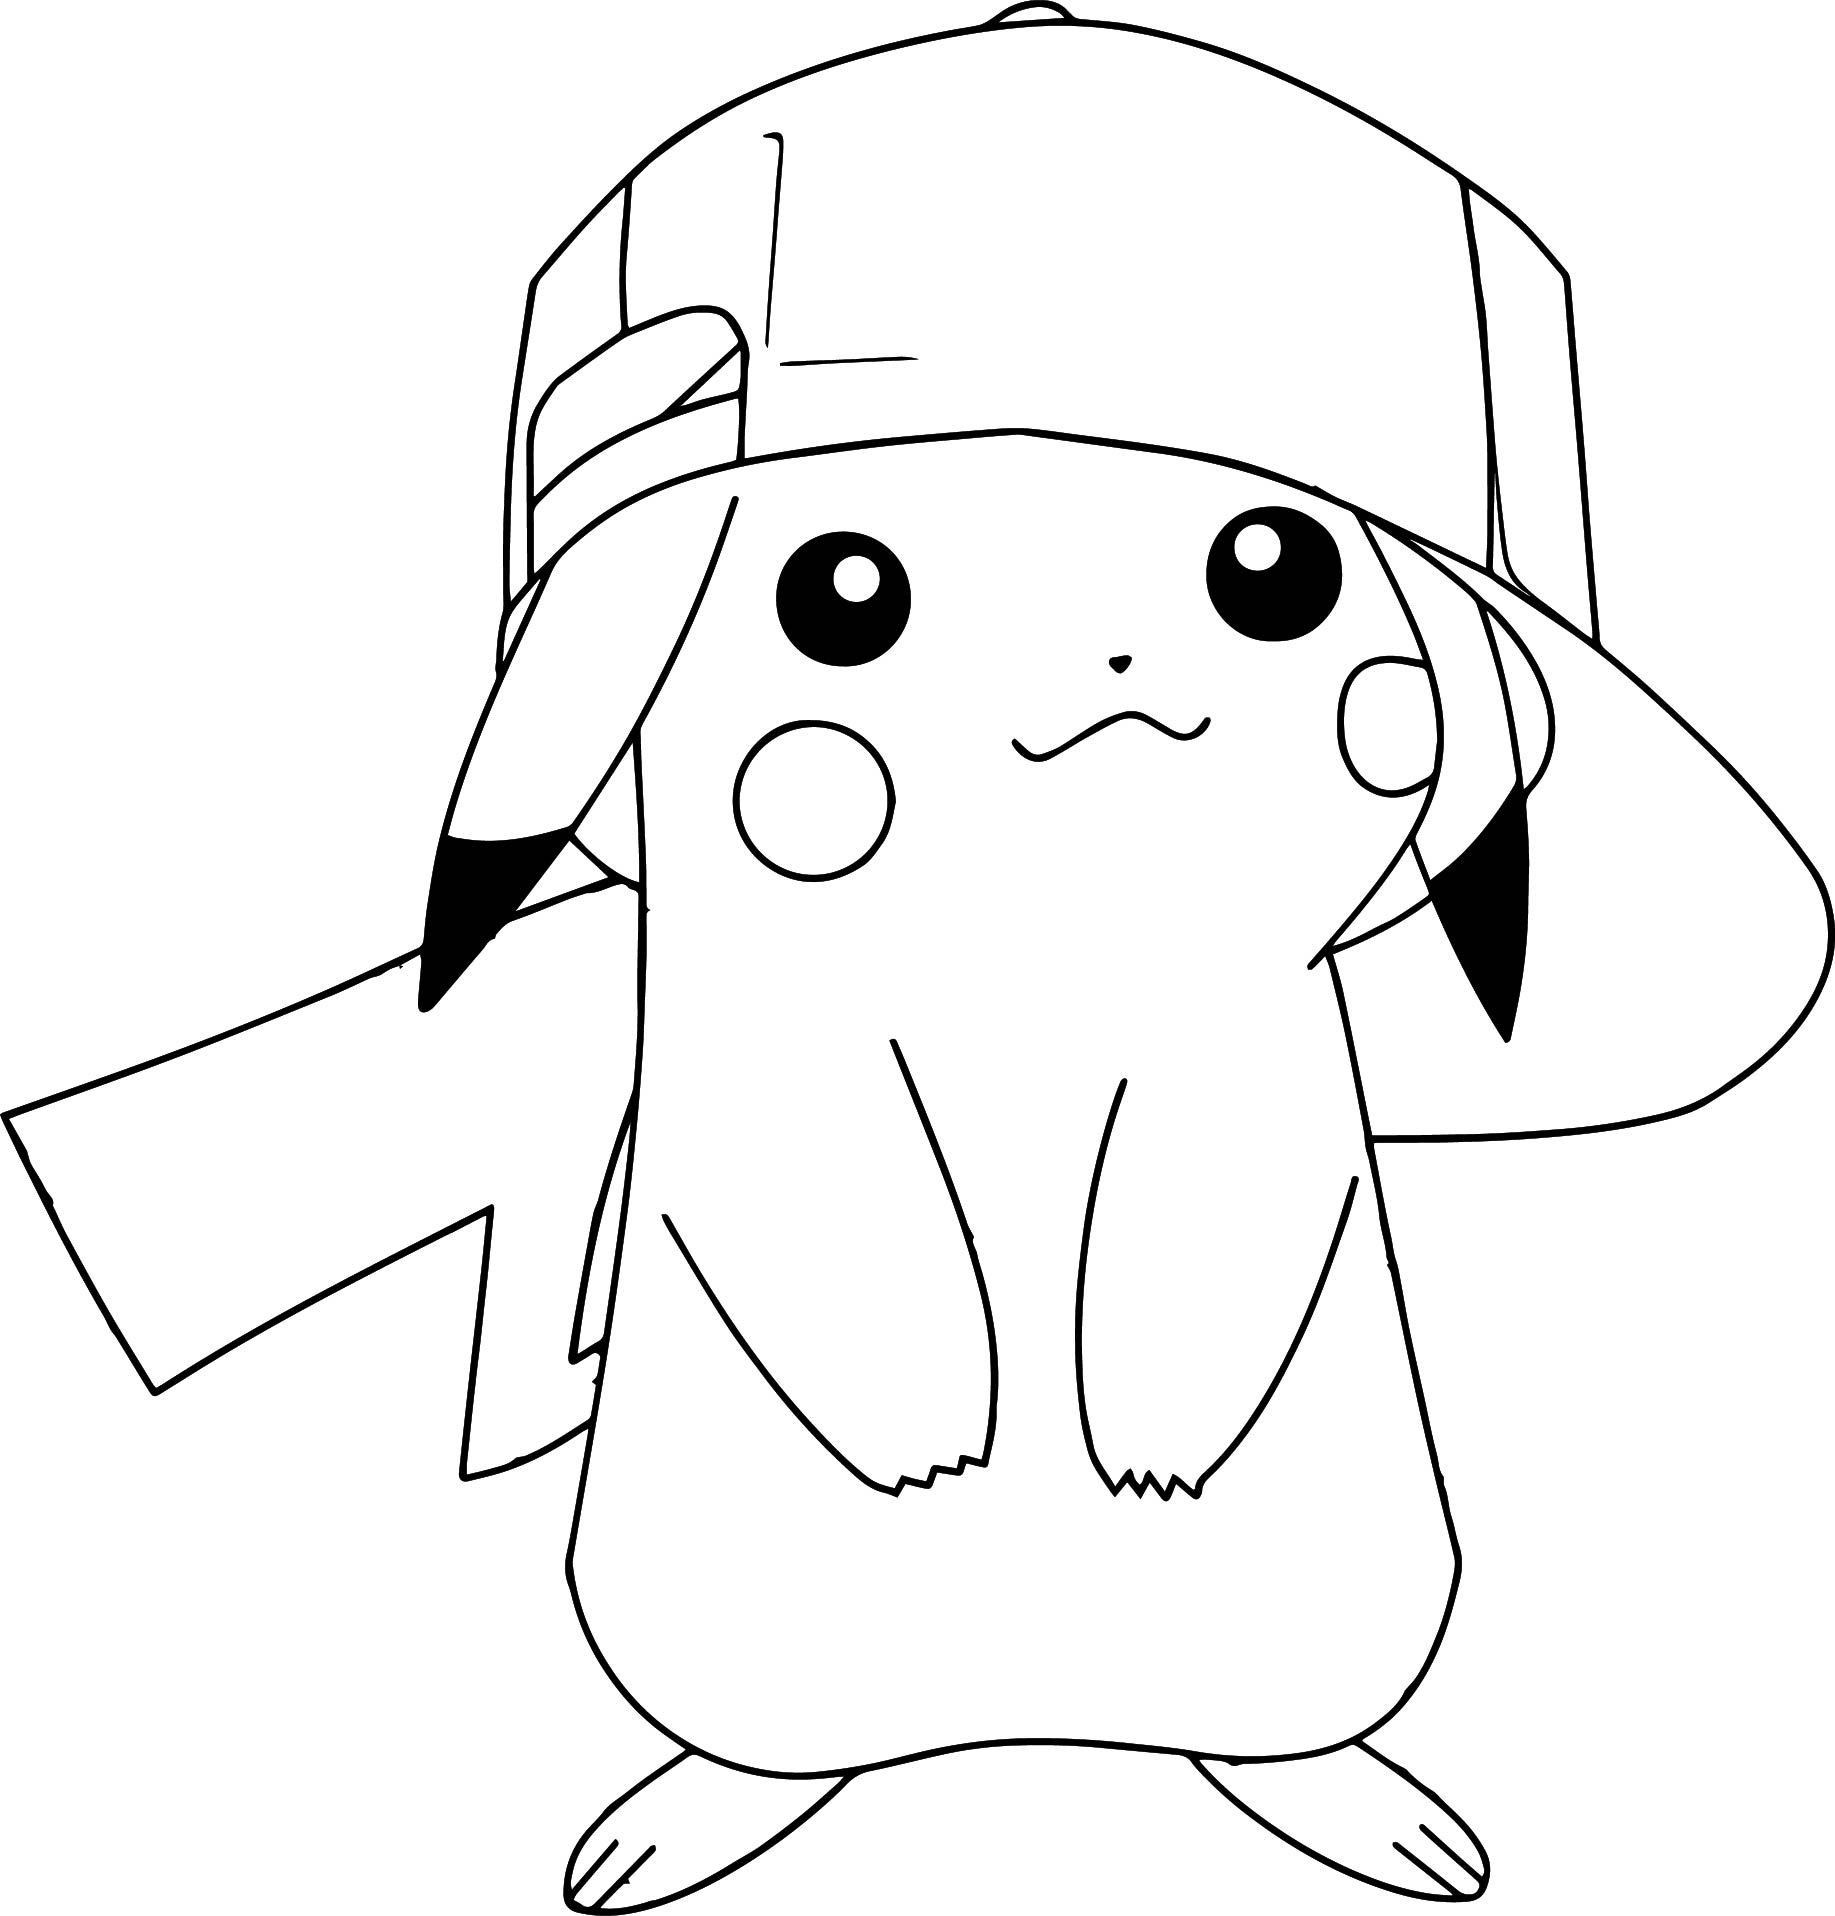 Pokemon Printable Coloring Pages Pikachu – Through the thousands